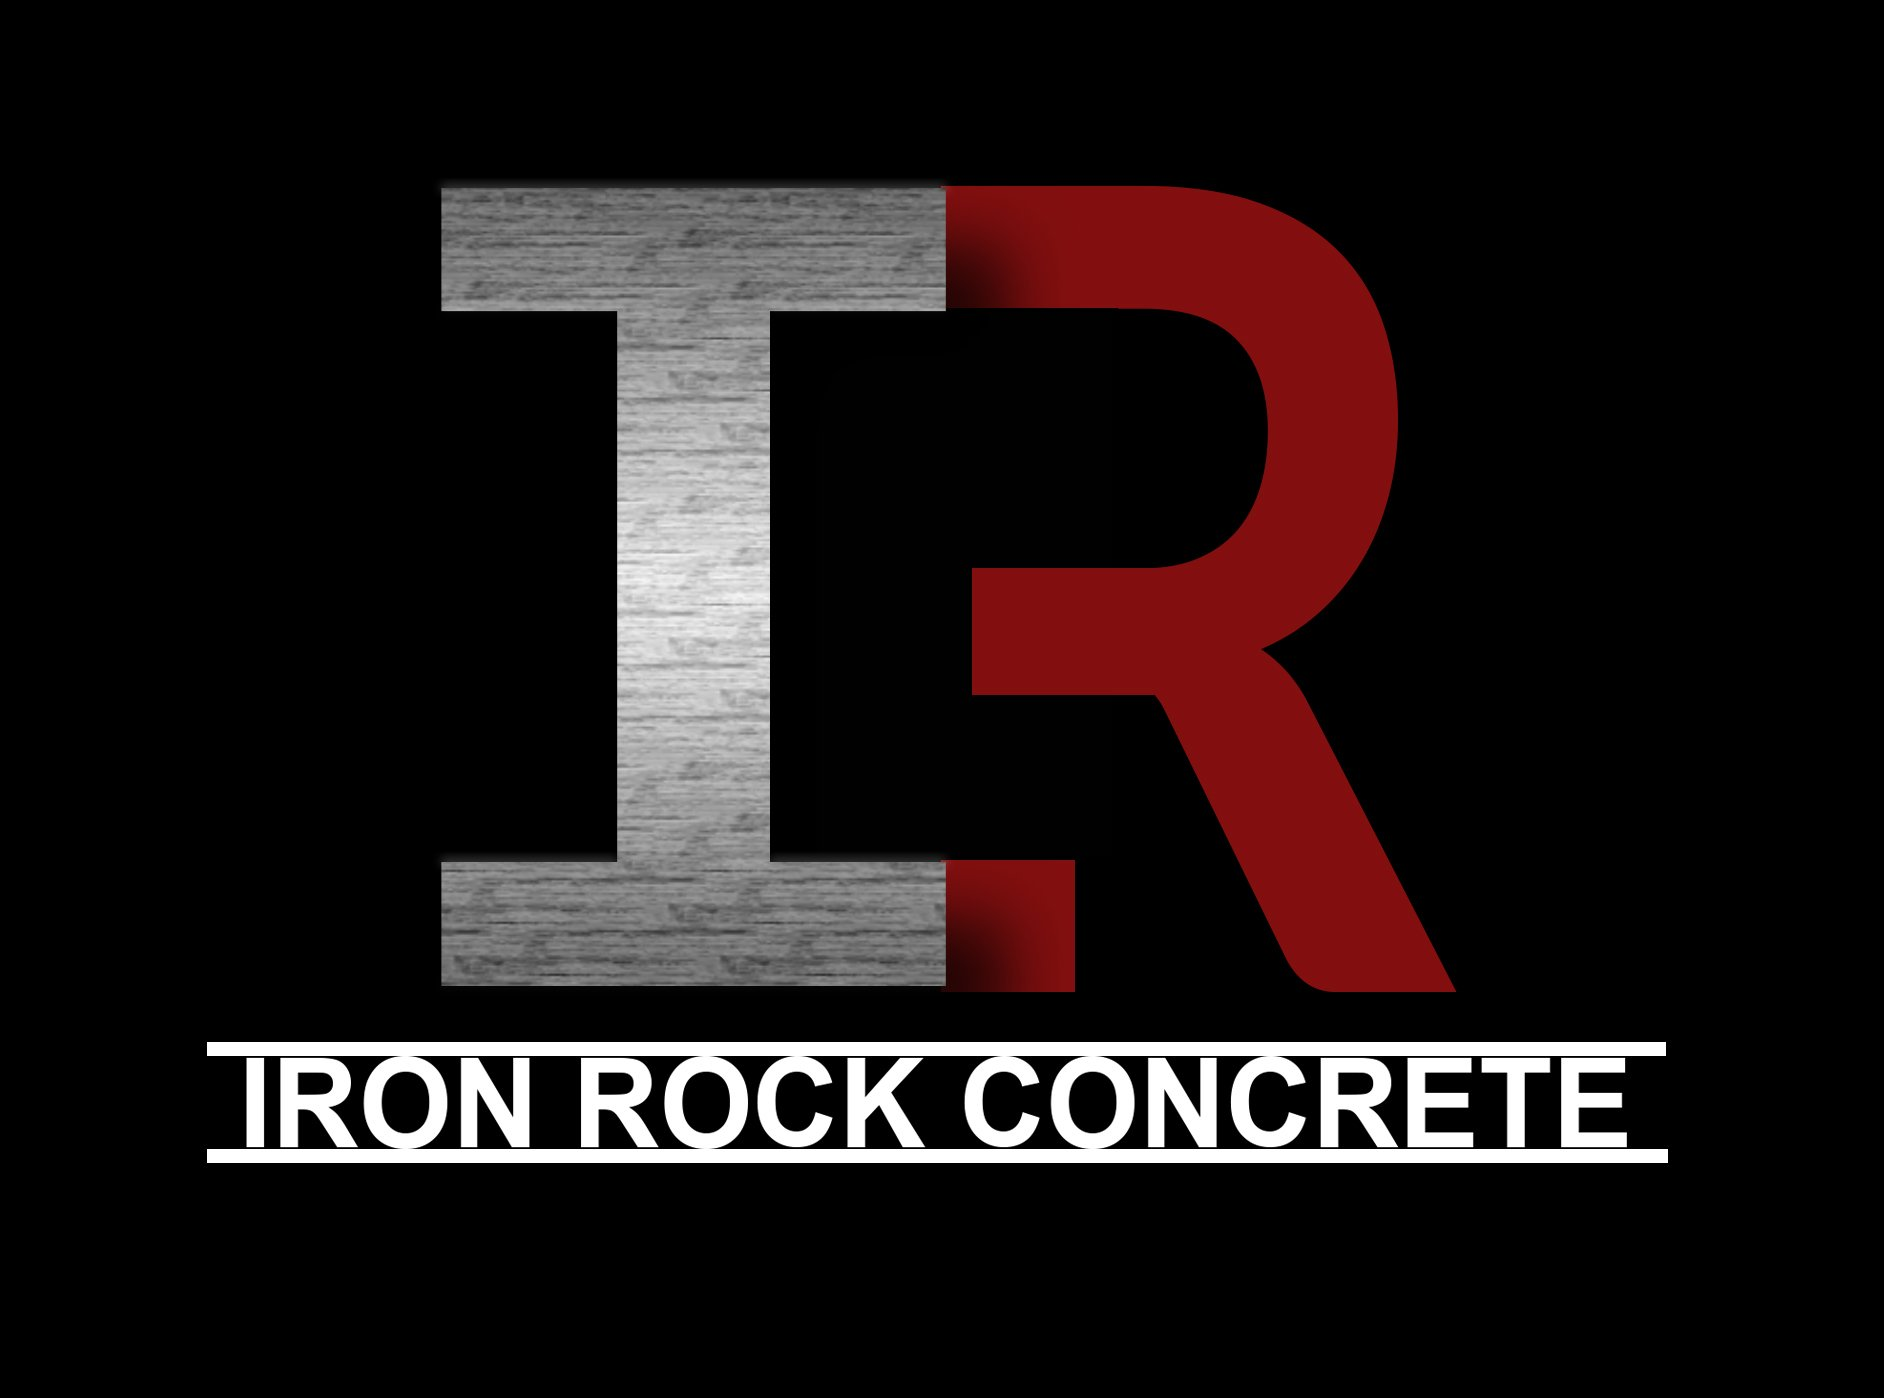 Iron Rock Concrete